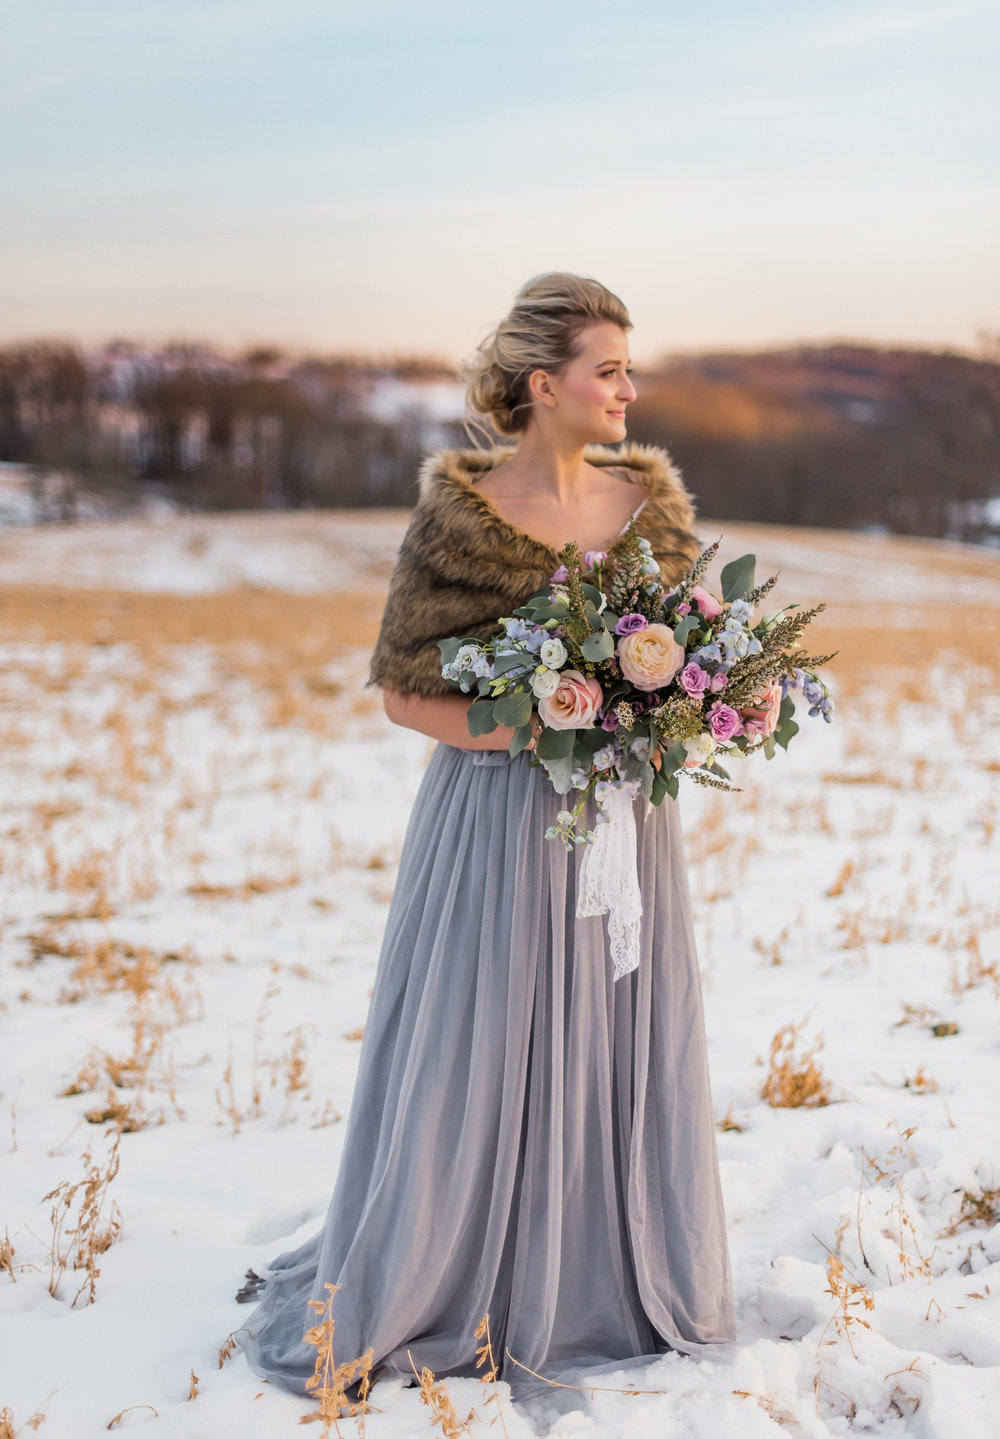 winter-romantic-snowy-pastel-pennsylvania-pittsburgh-wedding-styled-shoot-0028.jpg